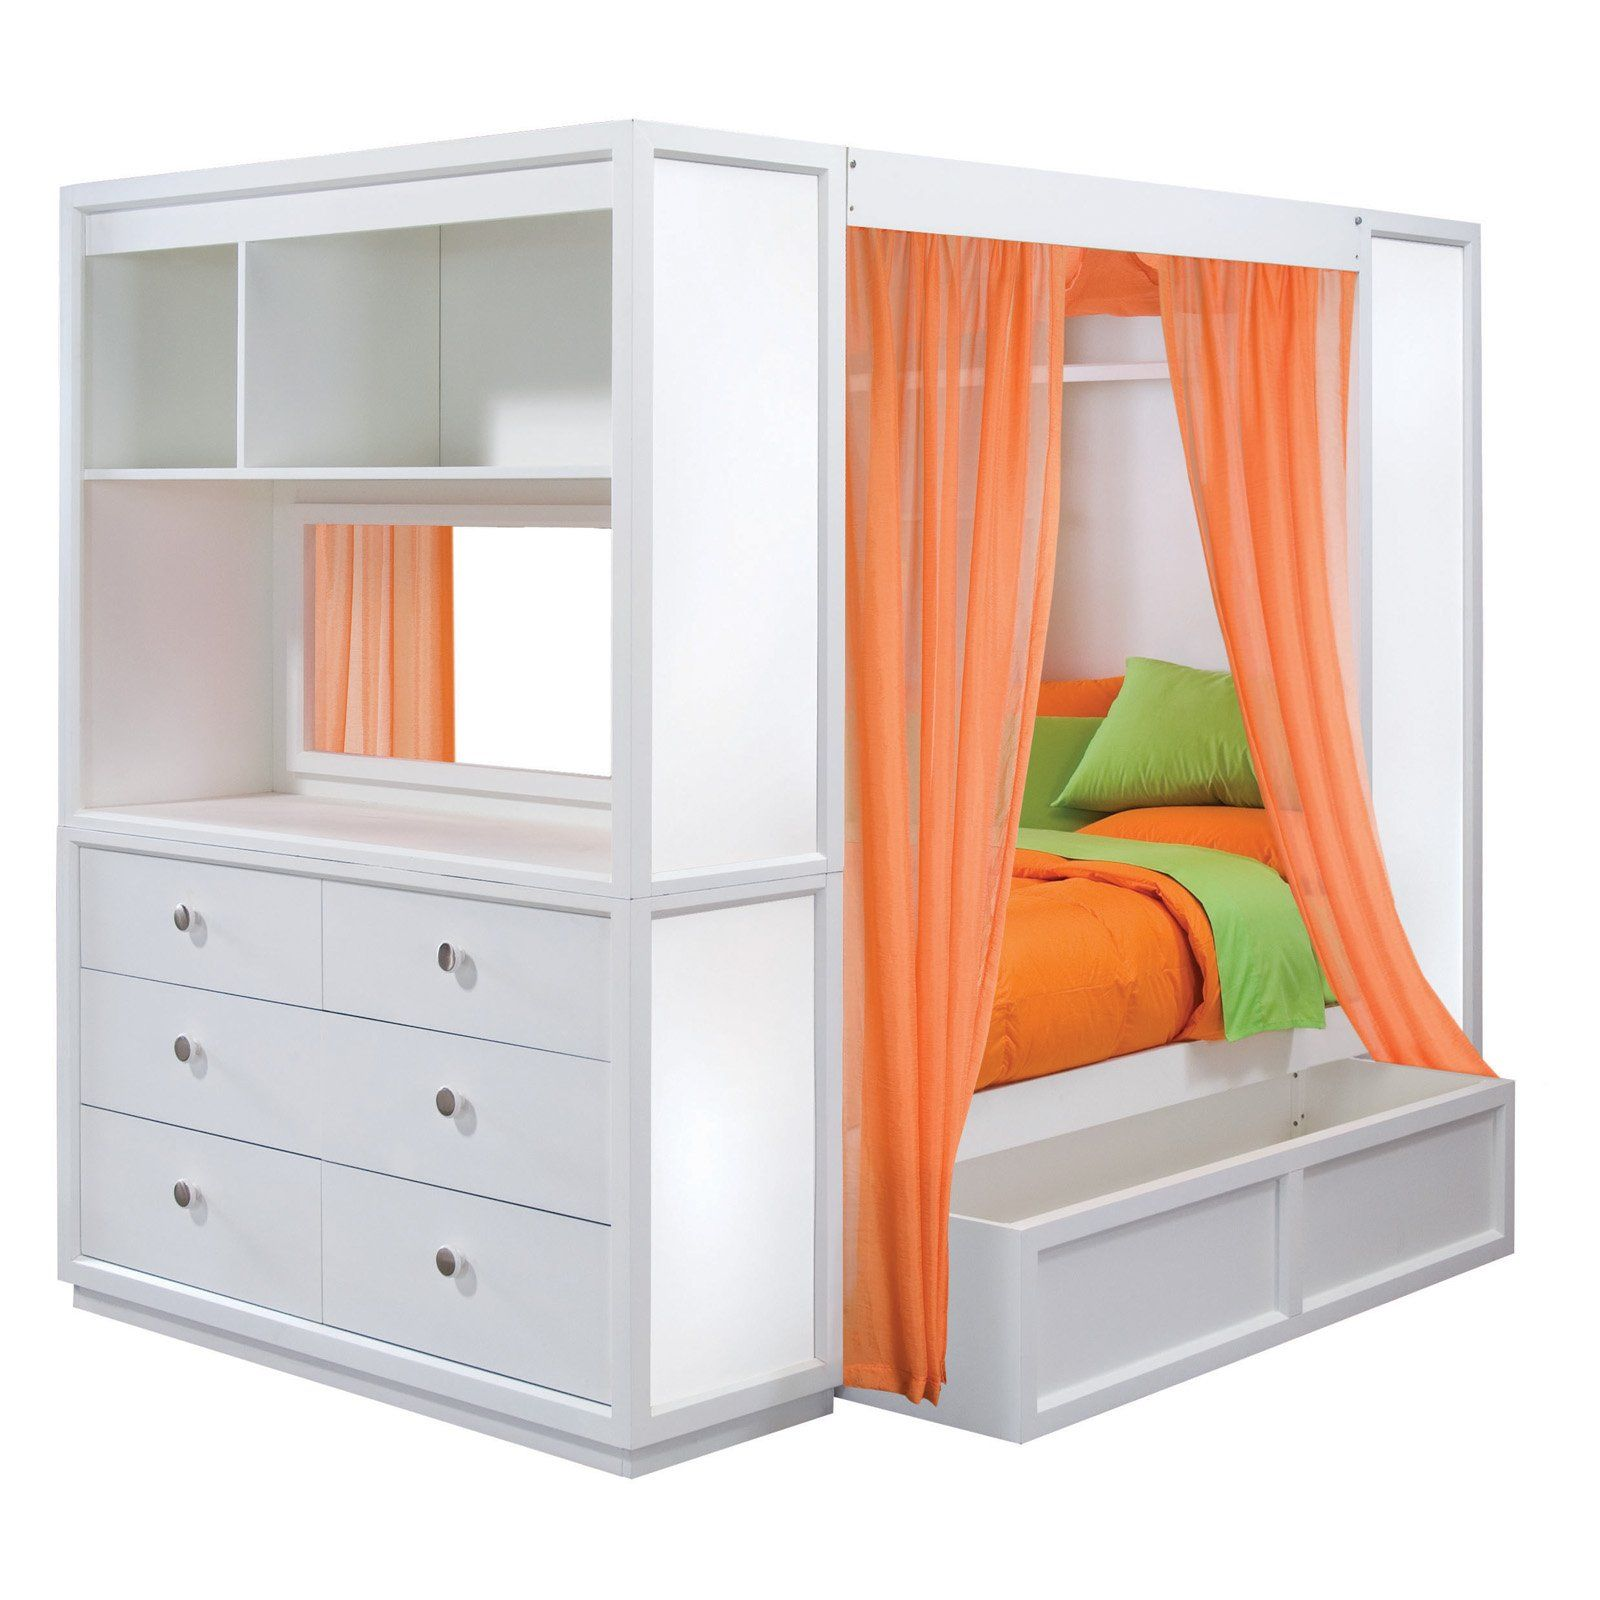 """Great way to have a """"canopy bed"""" with extra storage to"""